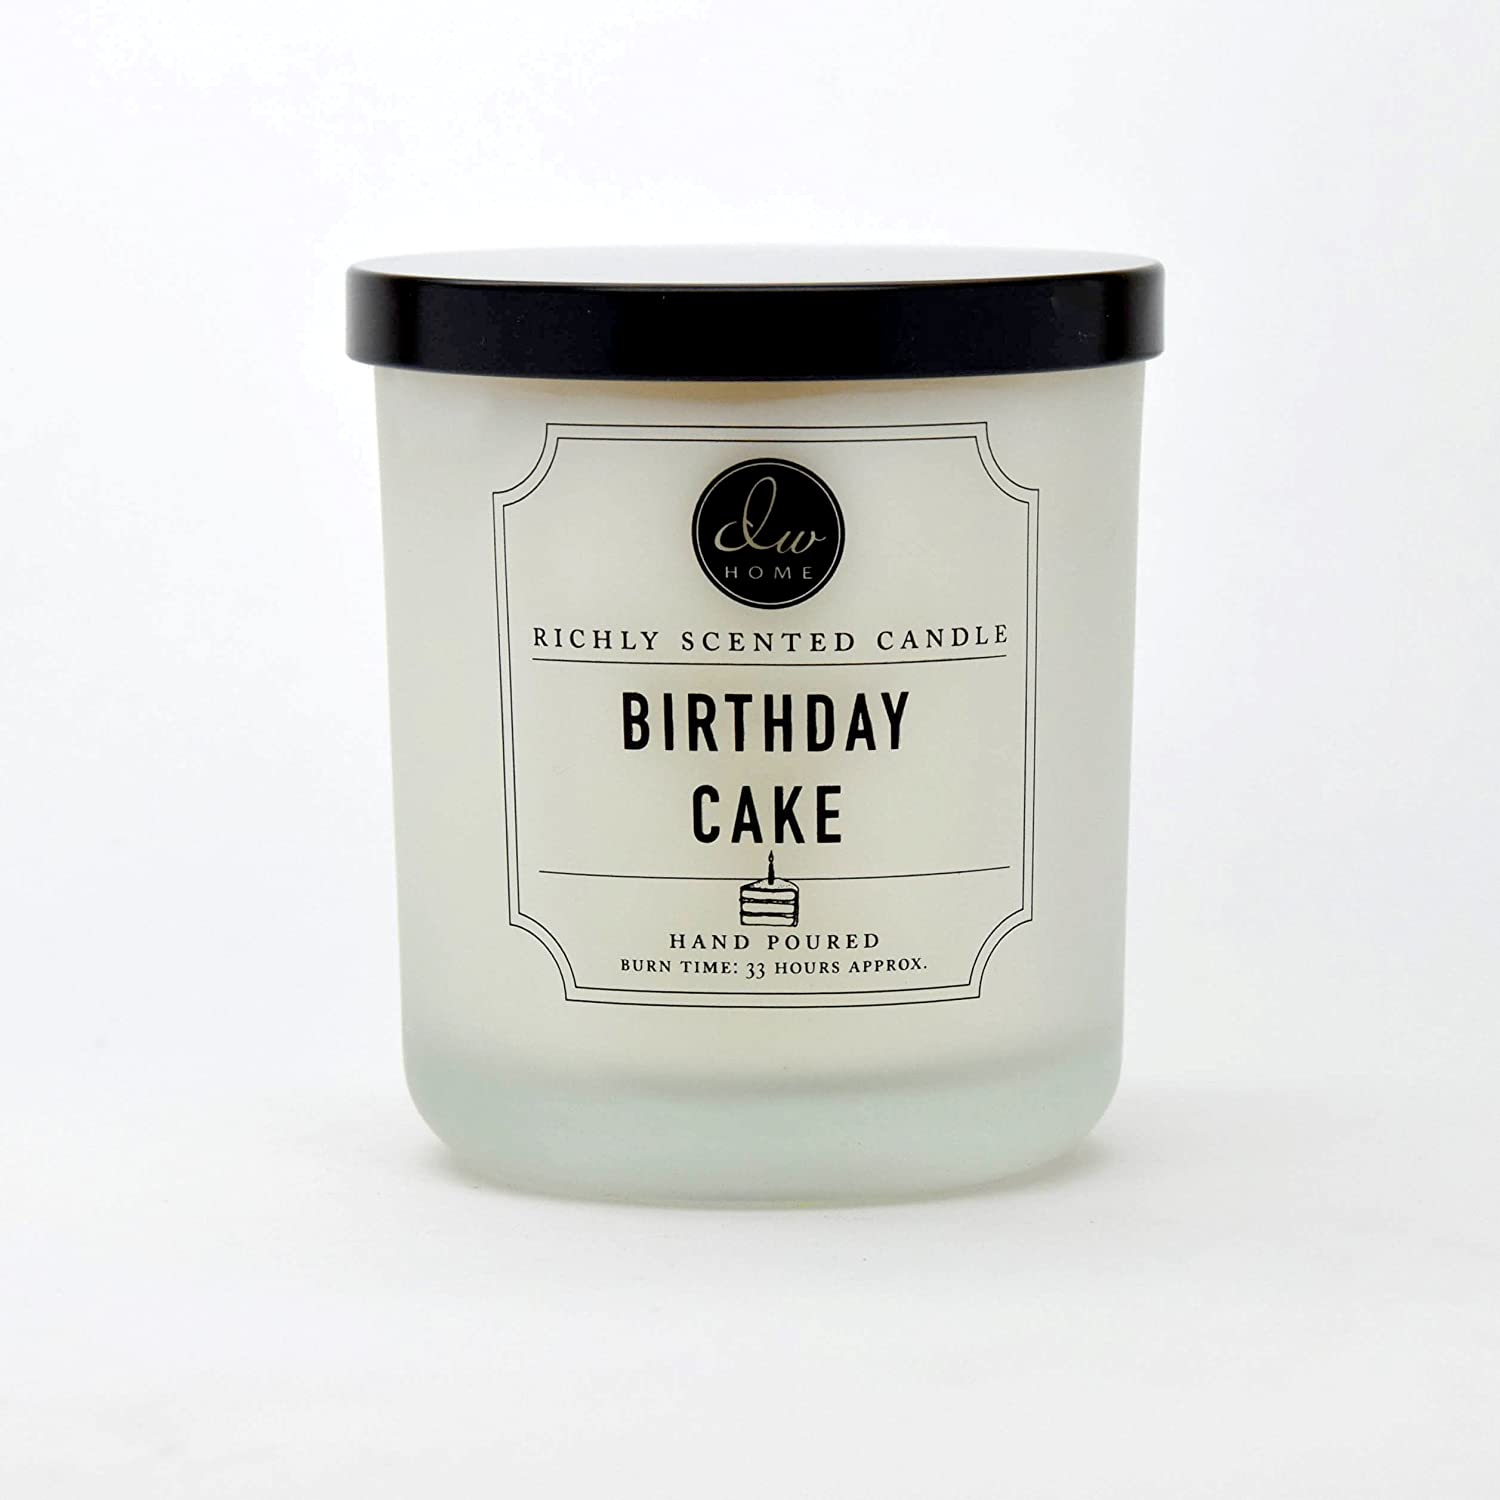 DW Home Medium Single Wick Candle, Birthday Cake